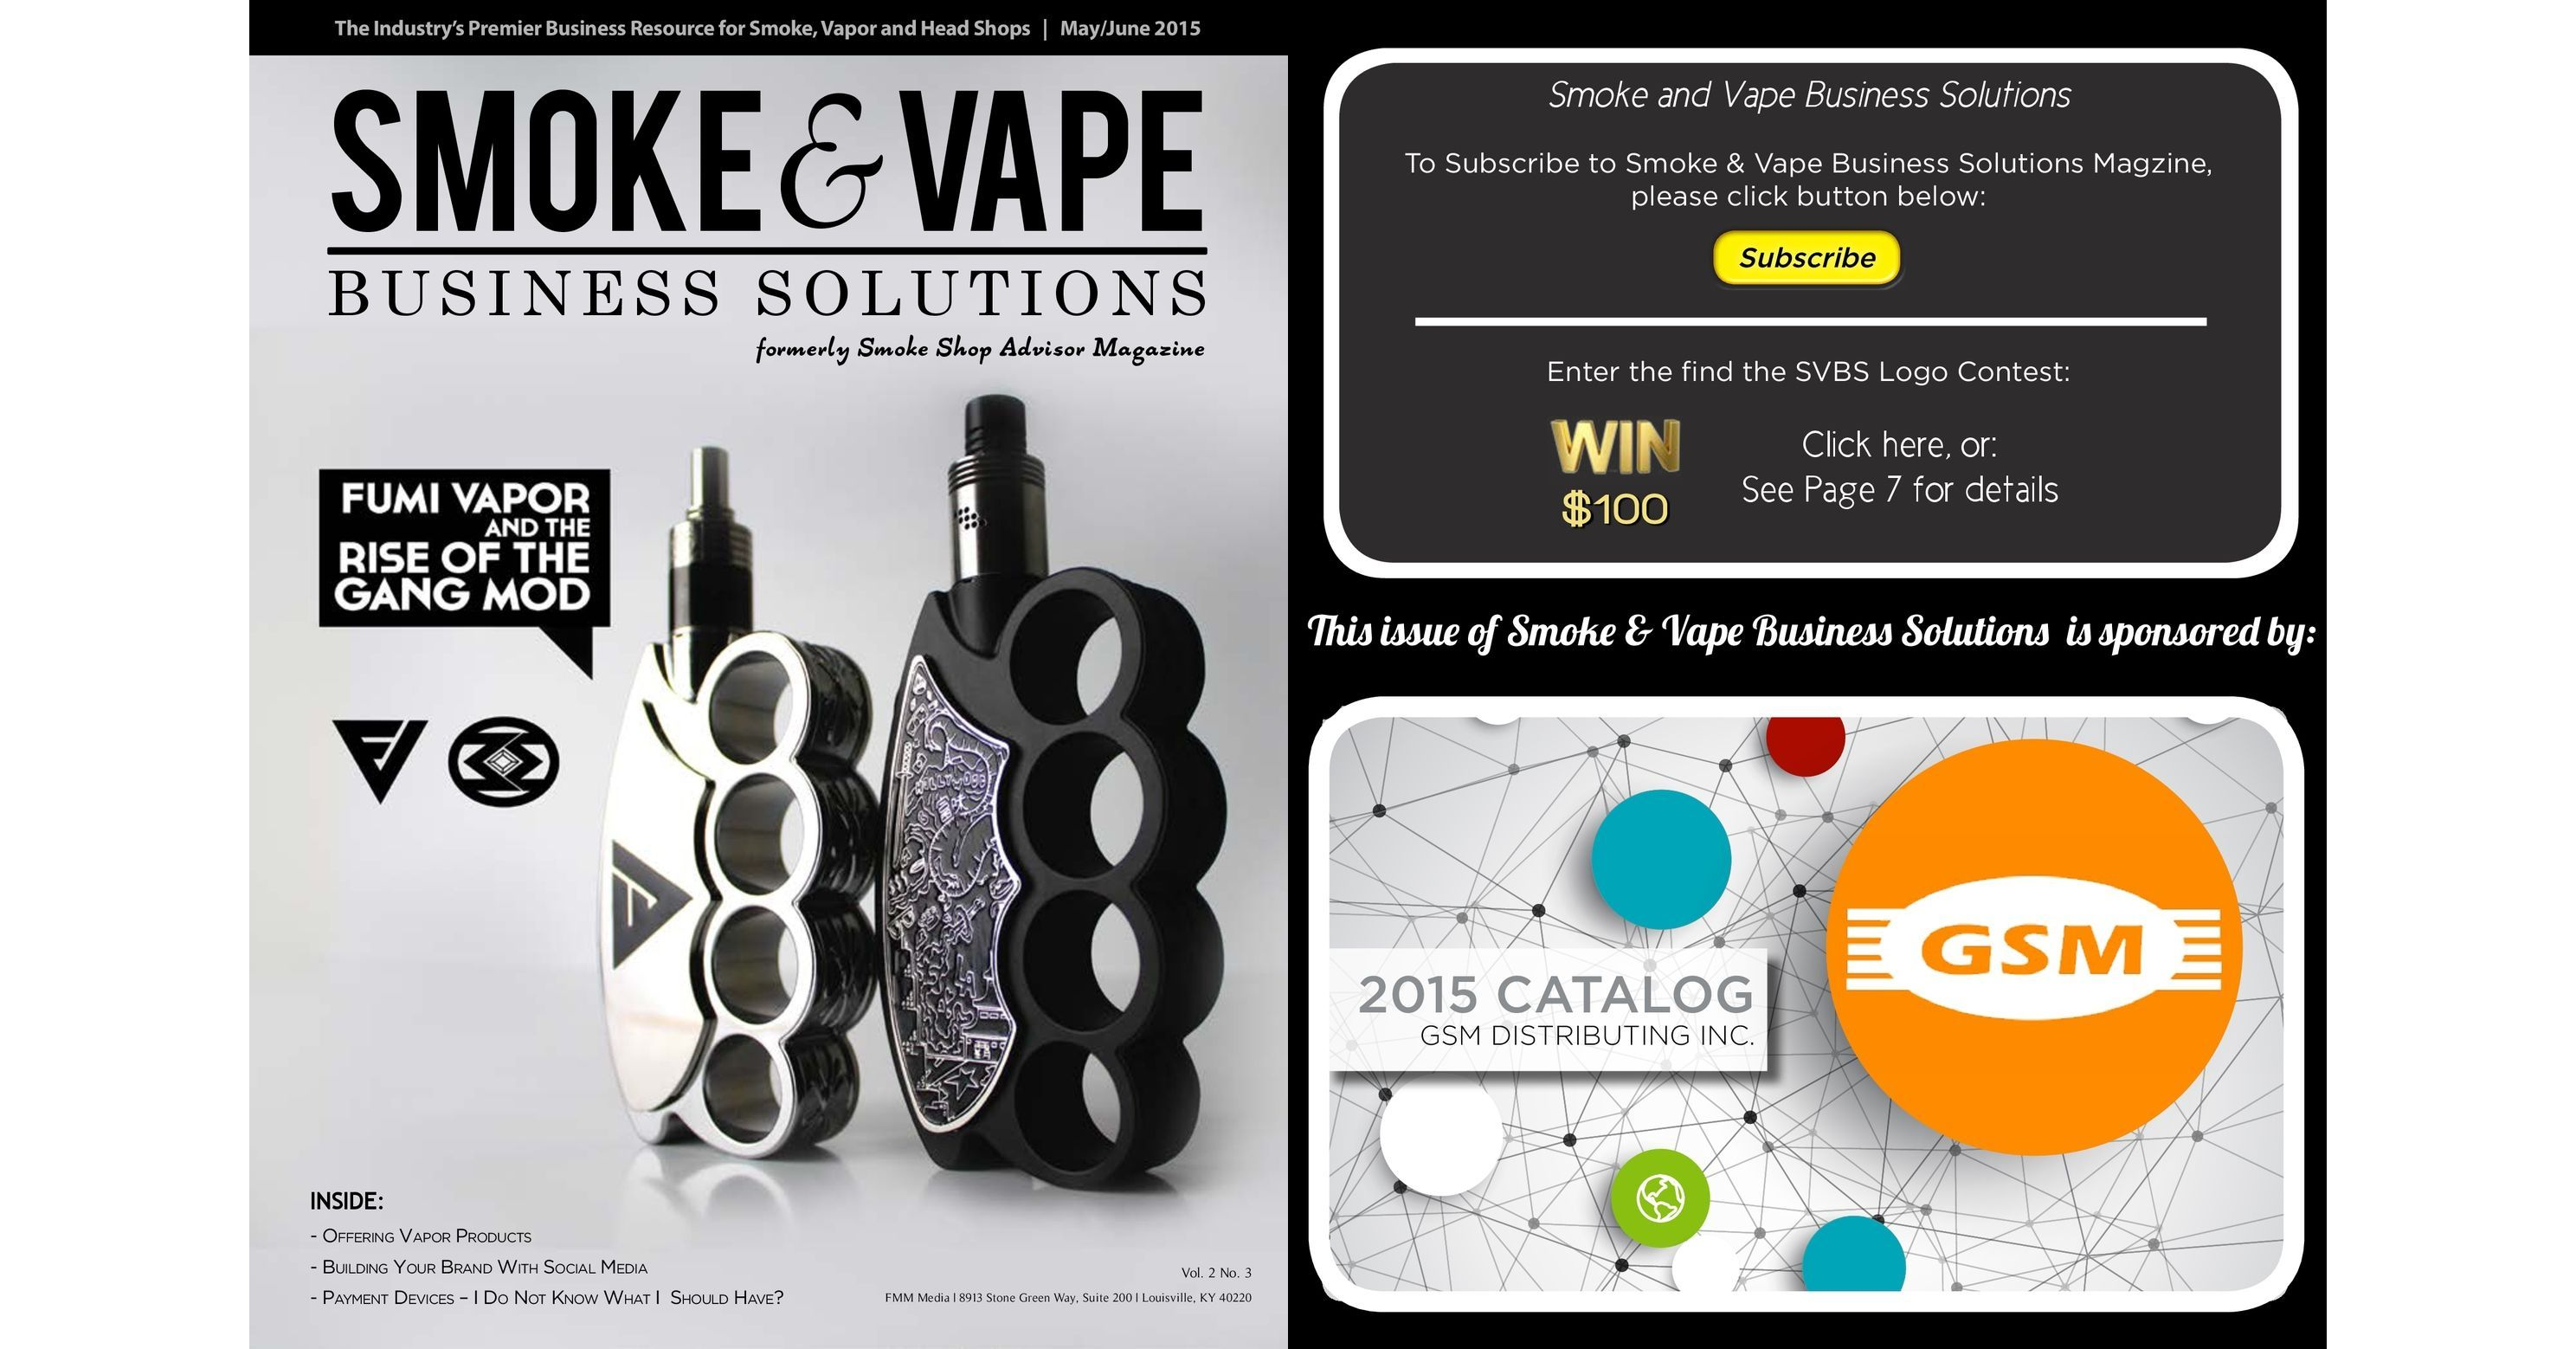 Smoke and Vape Business Solutions